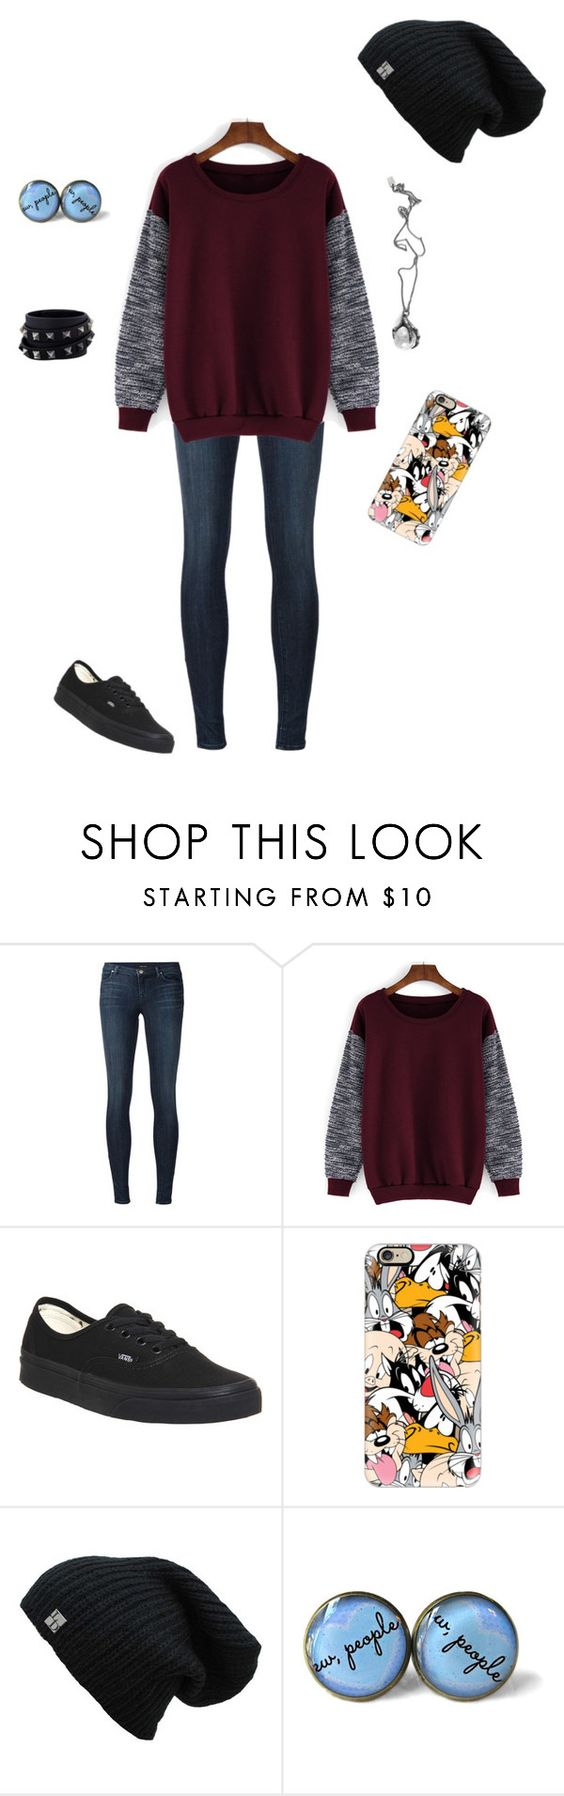 """""""Untitled #142"""" by vannabean ❤ liked on Polyvore featuring J Brand, Vans, Casetify, Valentino and Killstar"""